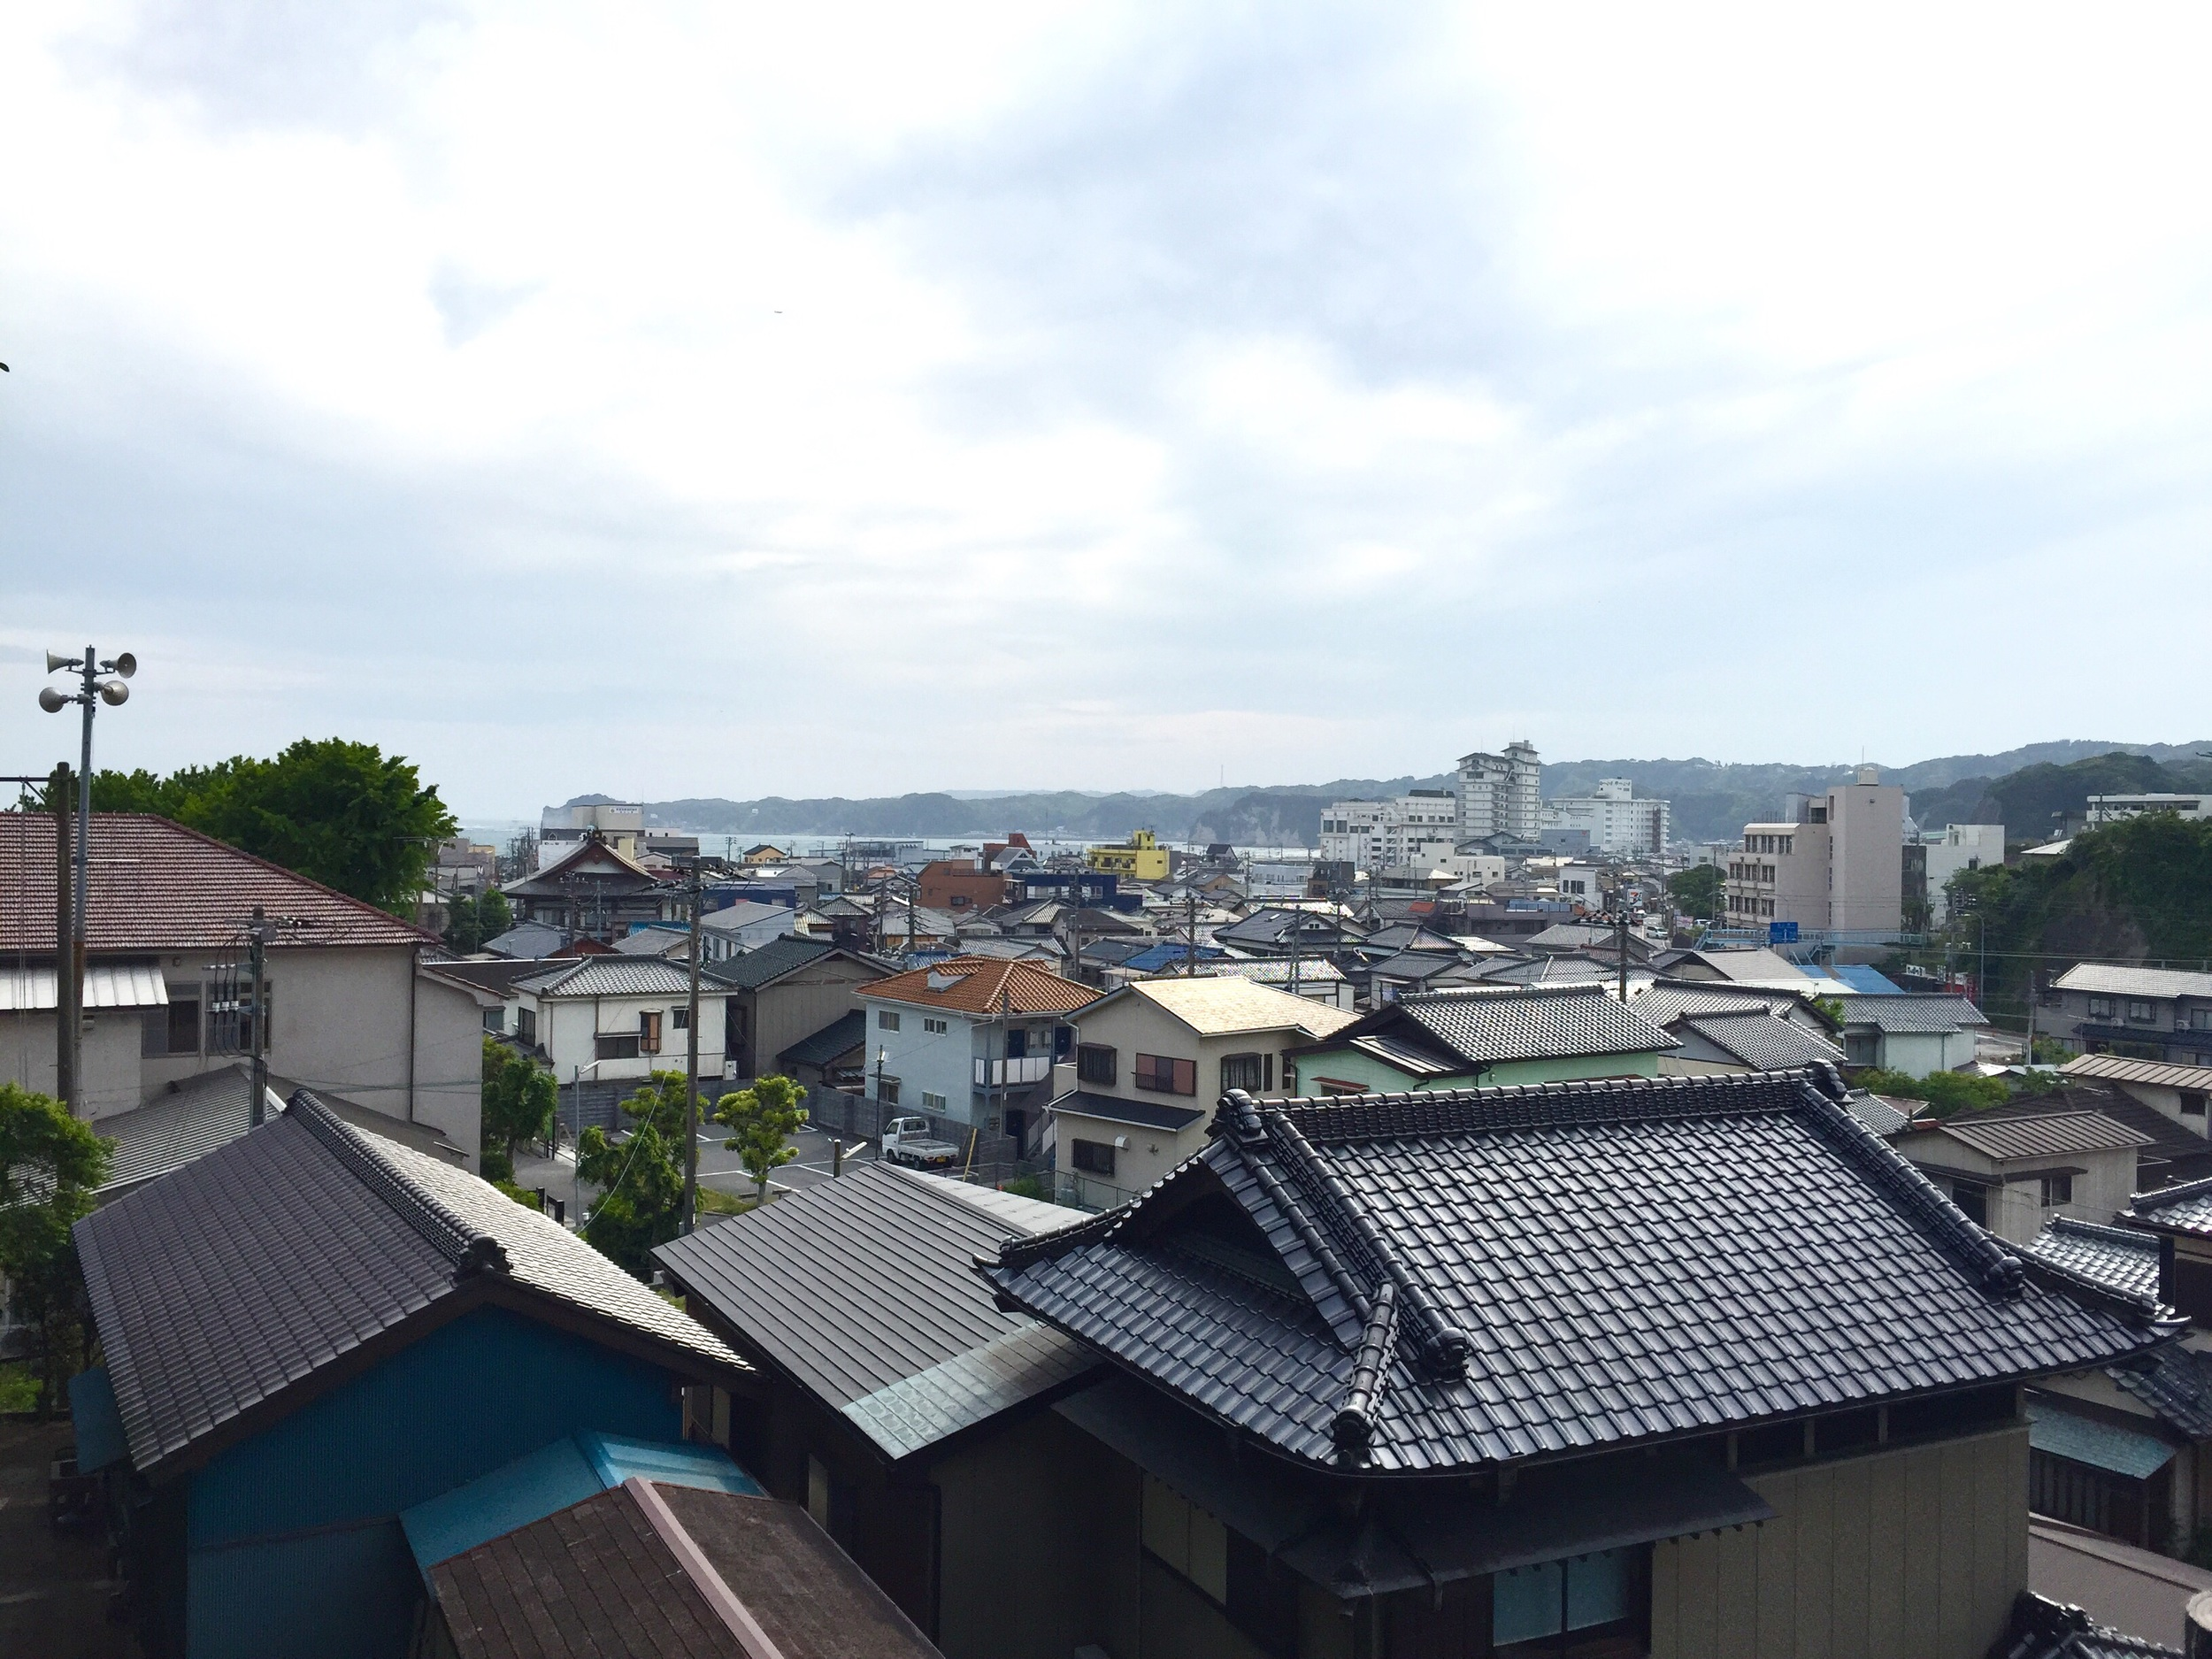 Katsuura , a major fishing port in southern Japan and the closest city to the above mentioned beach.